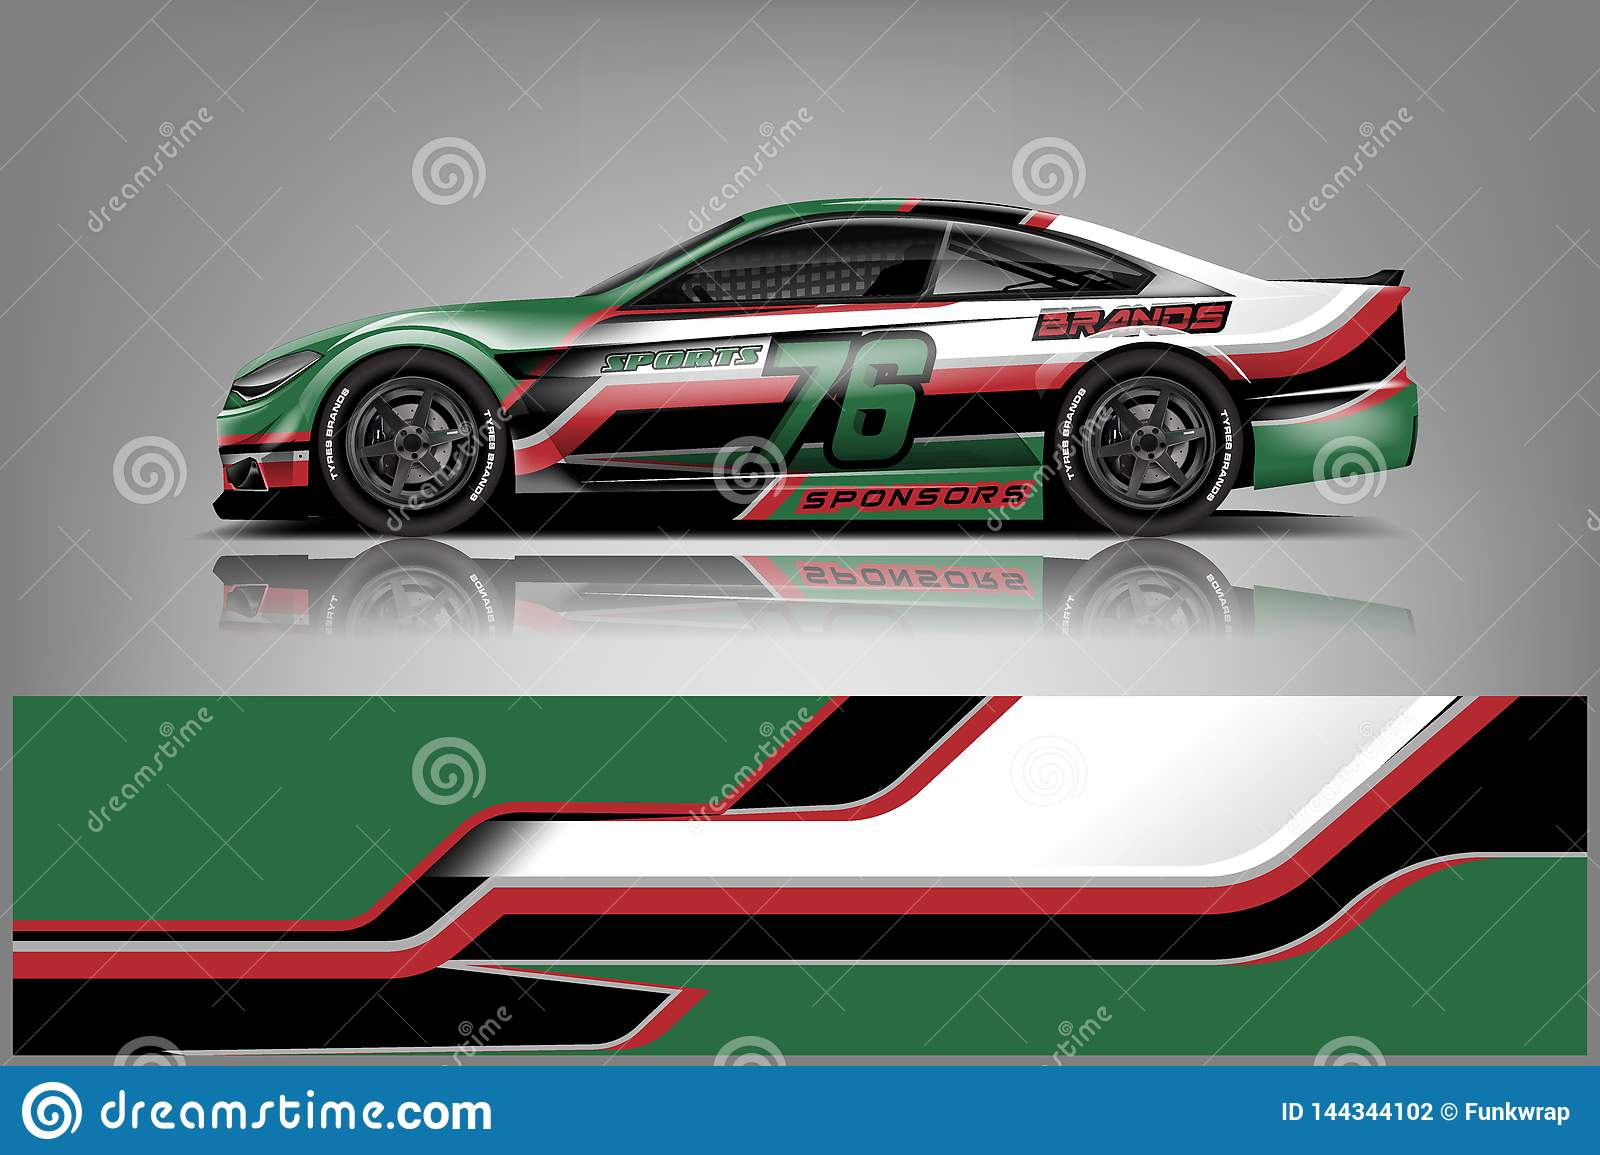 Car Decal Wrap Design Vector Graphic Abstract Stripe Racing Background Kit Designs For Vehicle Race Car Rally Adventure And Li Stock Vector Illustration Of Designs Modern 144344102